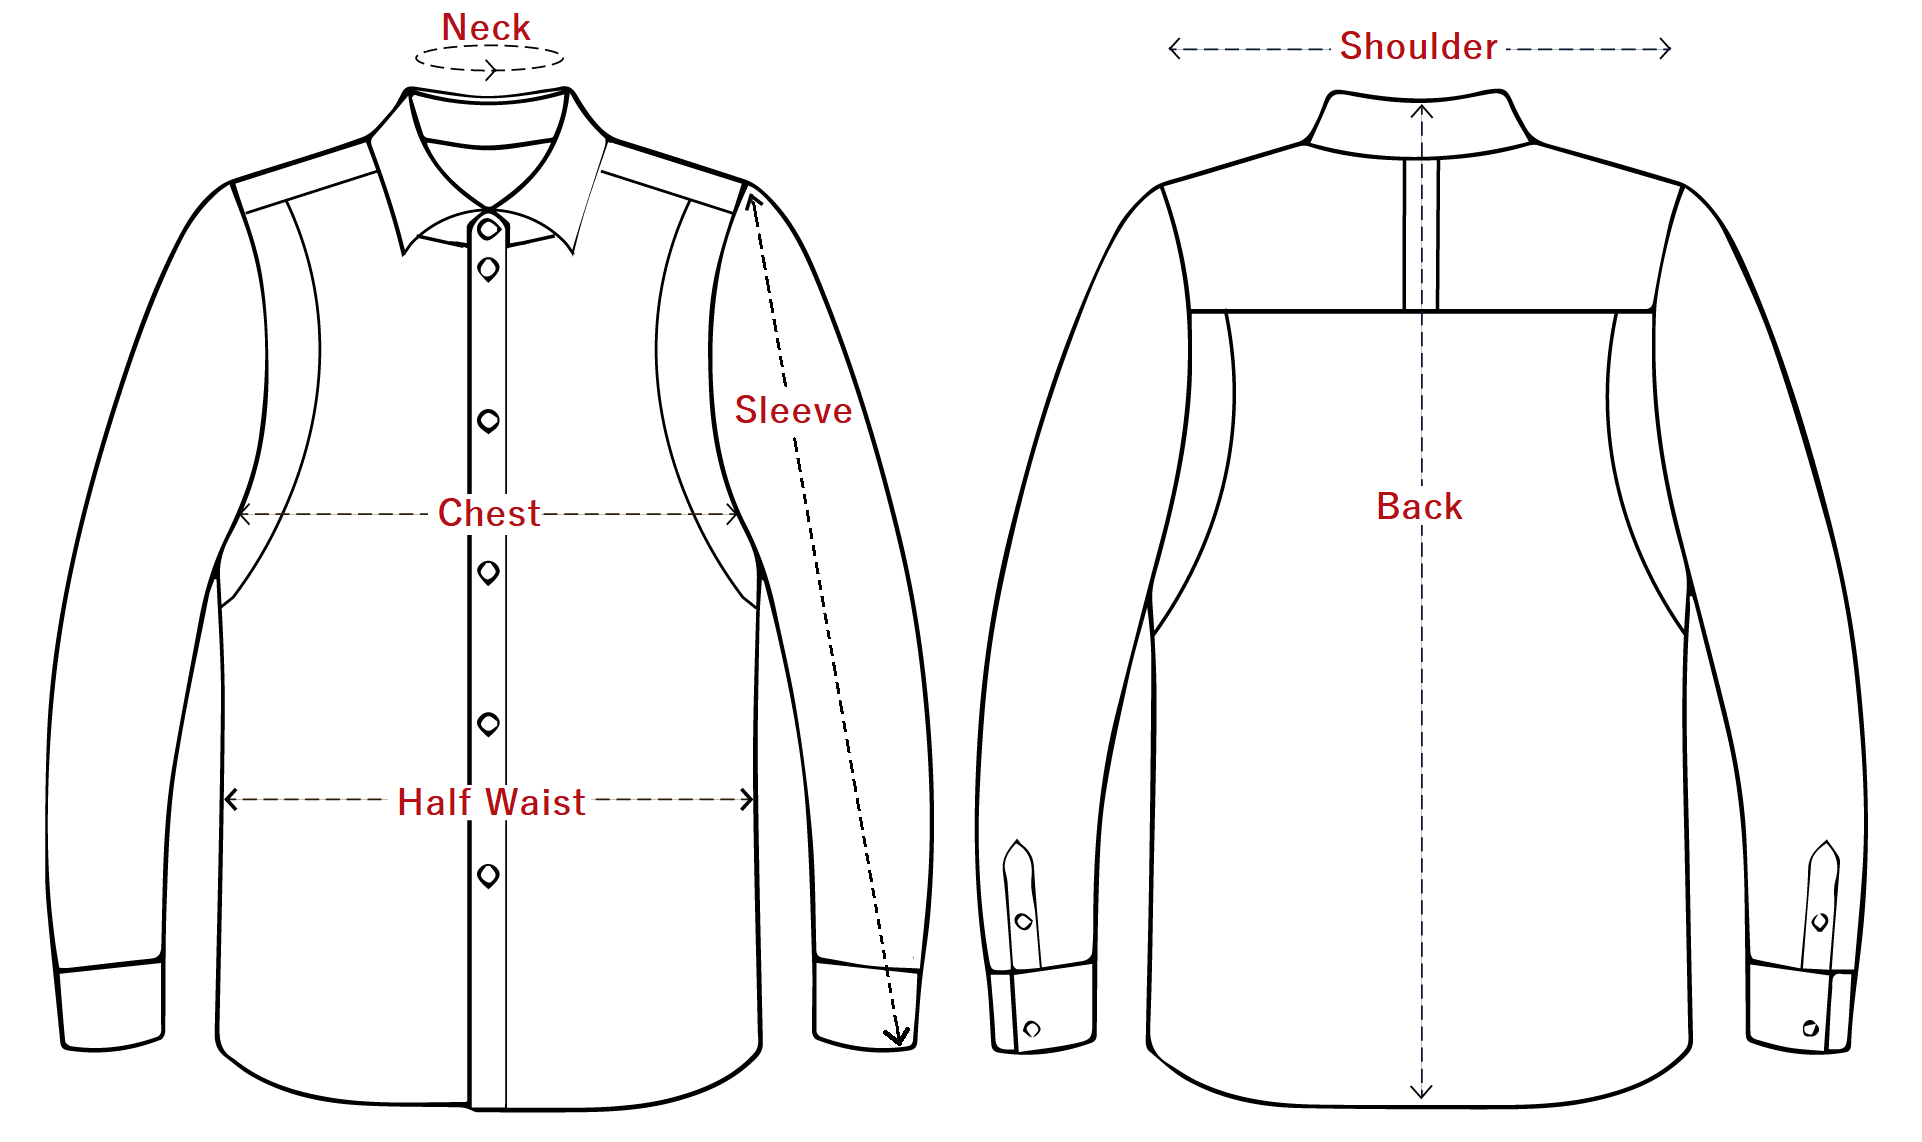 Cyclical Dress Shirt Evergreen Measurement Guide